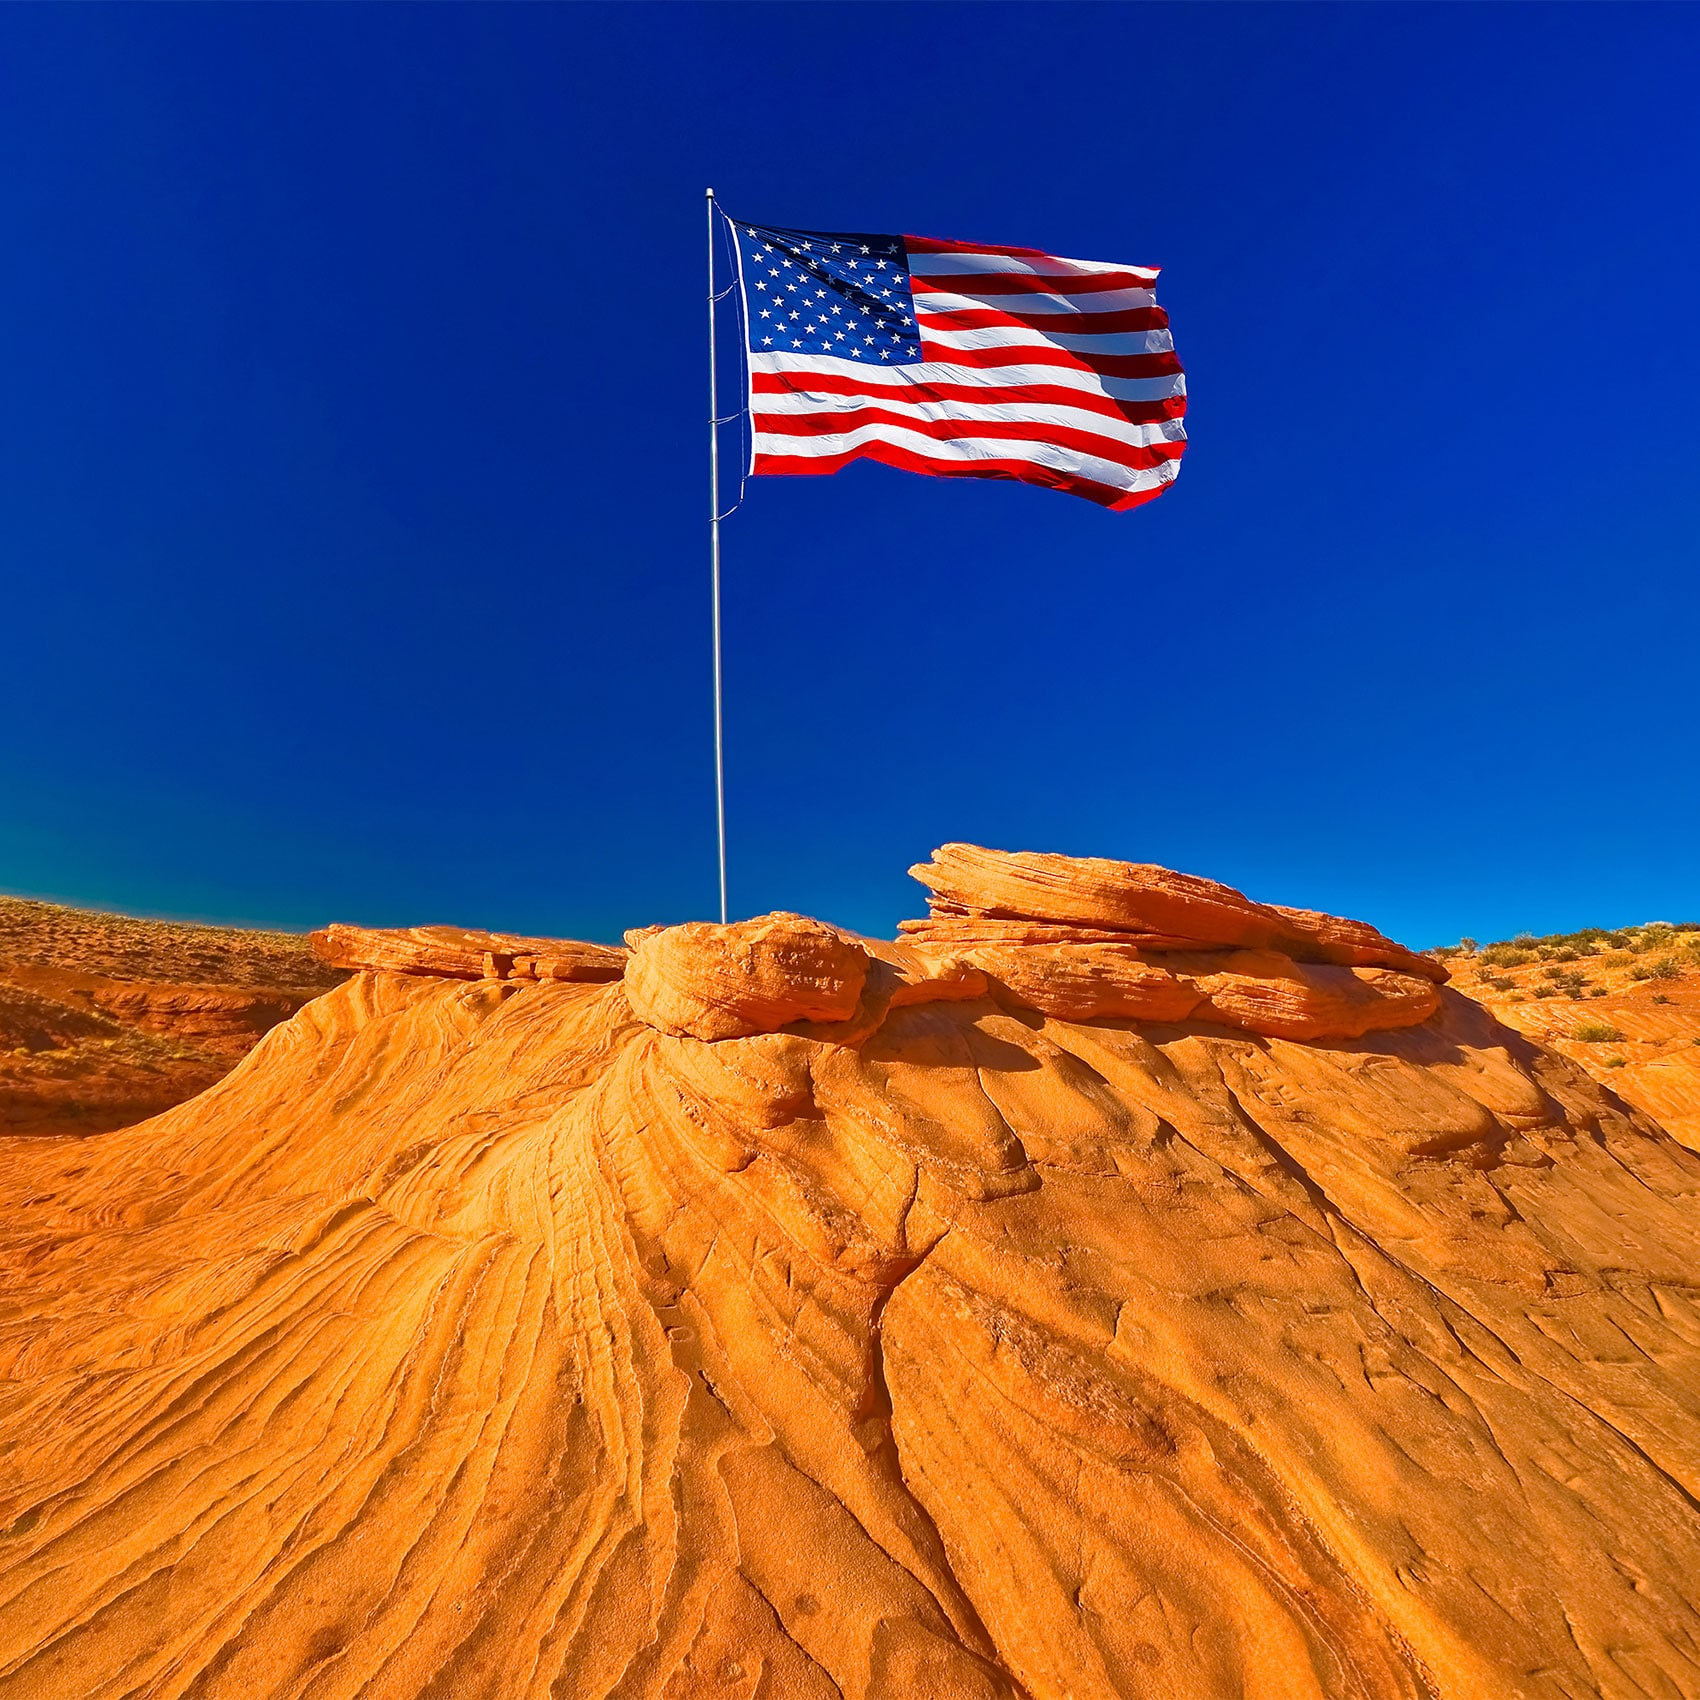 A beautiful and stunning sight of an American flag in a large, dry, barren region, usually having sandy or rocky soil and little or no vegetation.